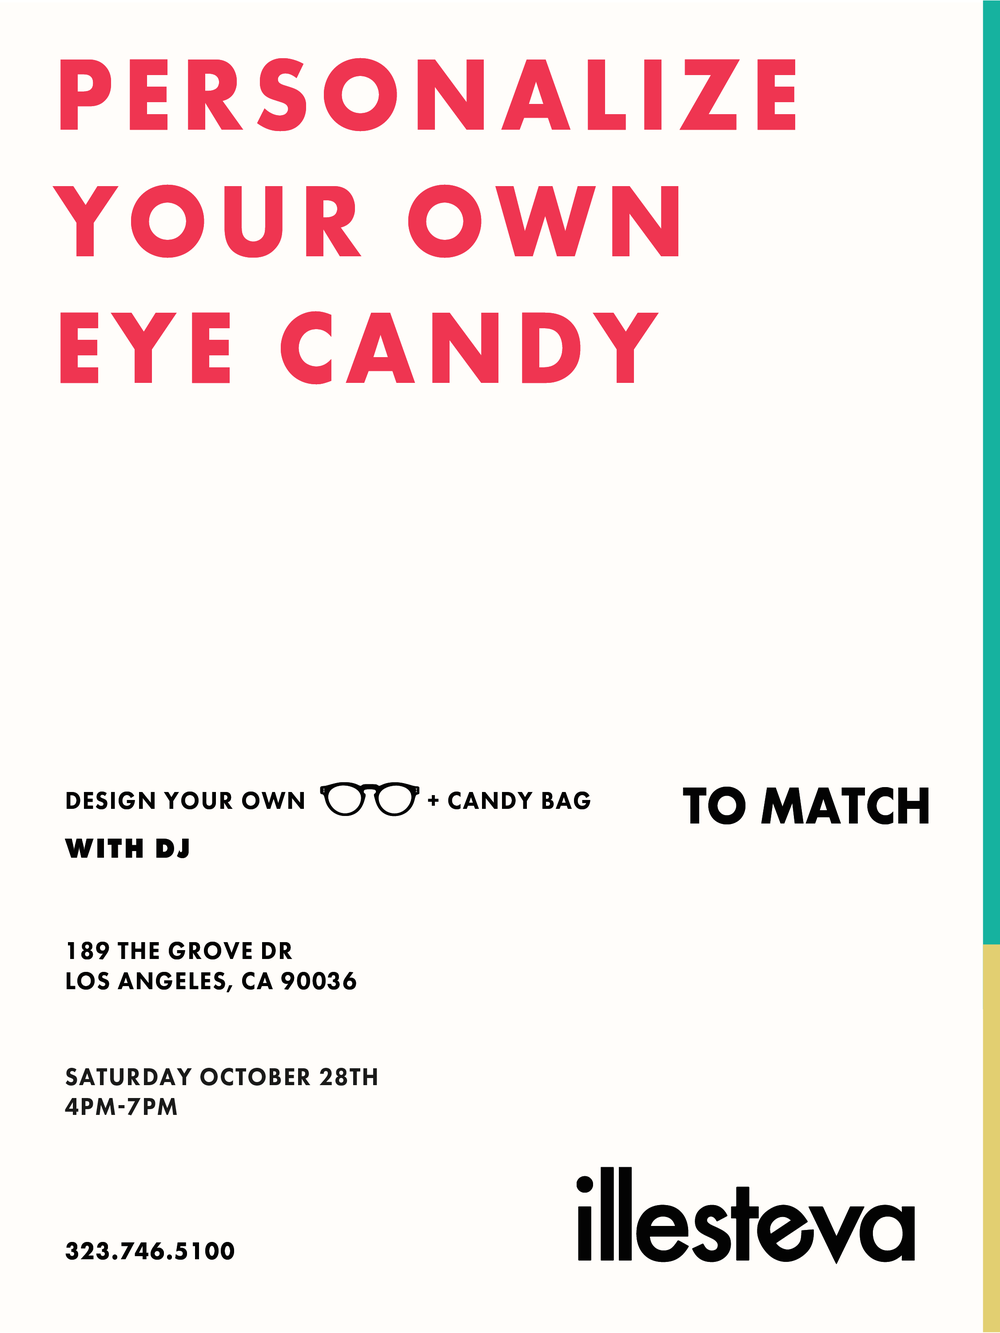 Personalize Your Eye Candy - Customization Event at Illesteva The Grove